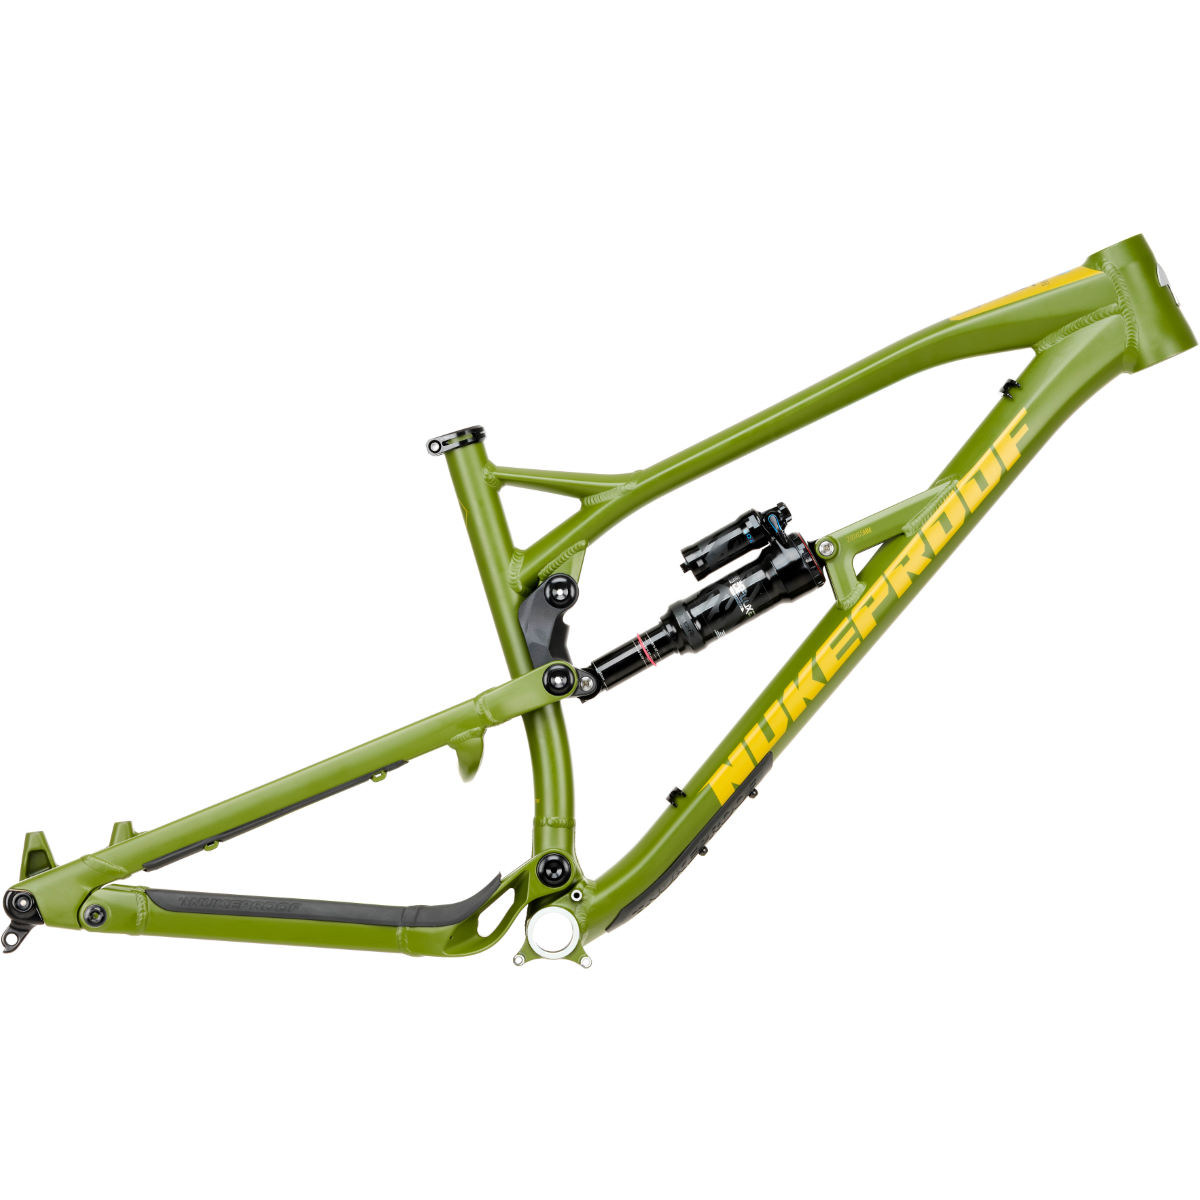 Nukeproof Nukeproof Mega 275 Alloy Mountain Bike Frame (2020)   Full Sus Mountain Bike Frames